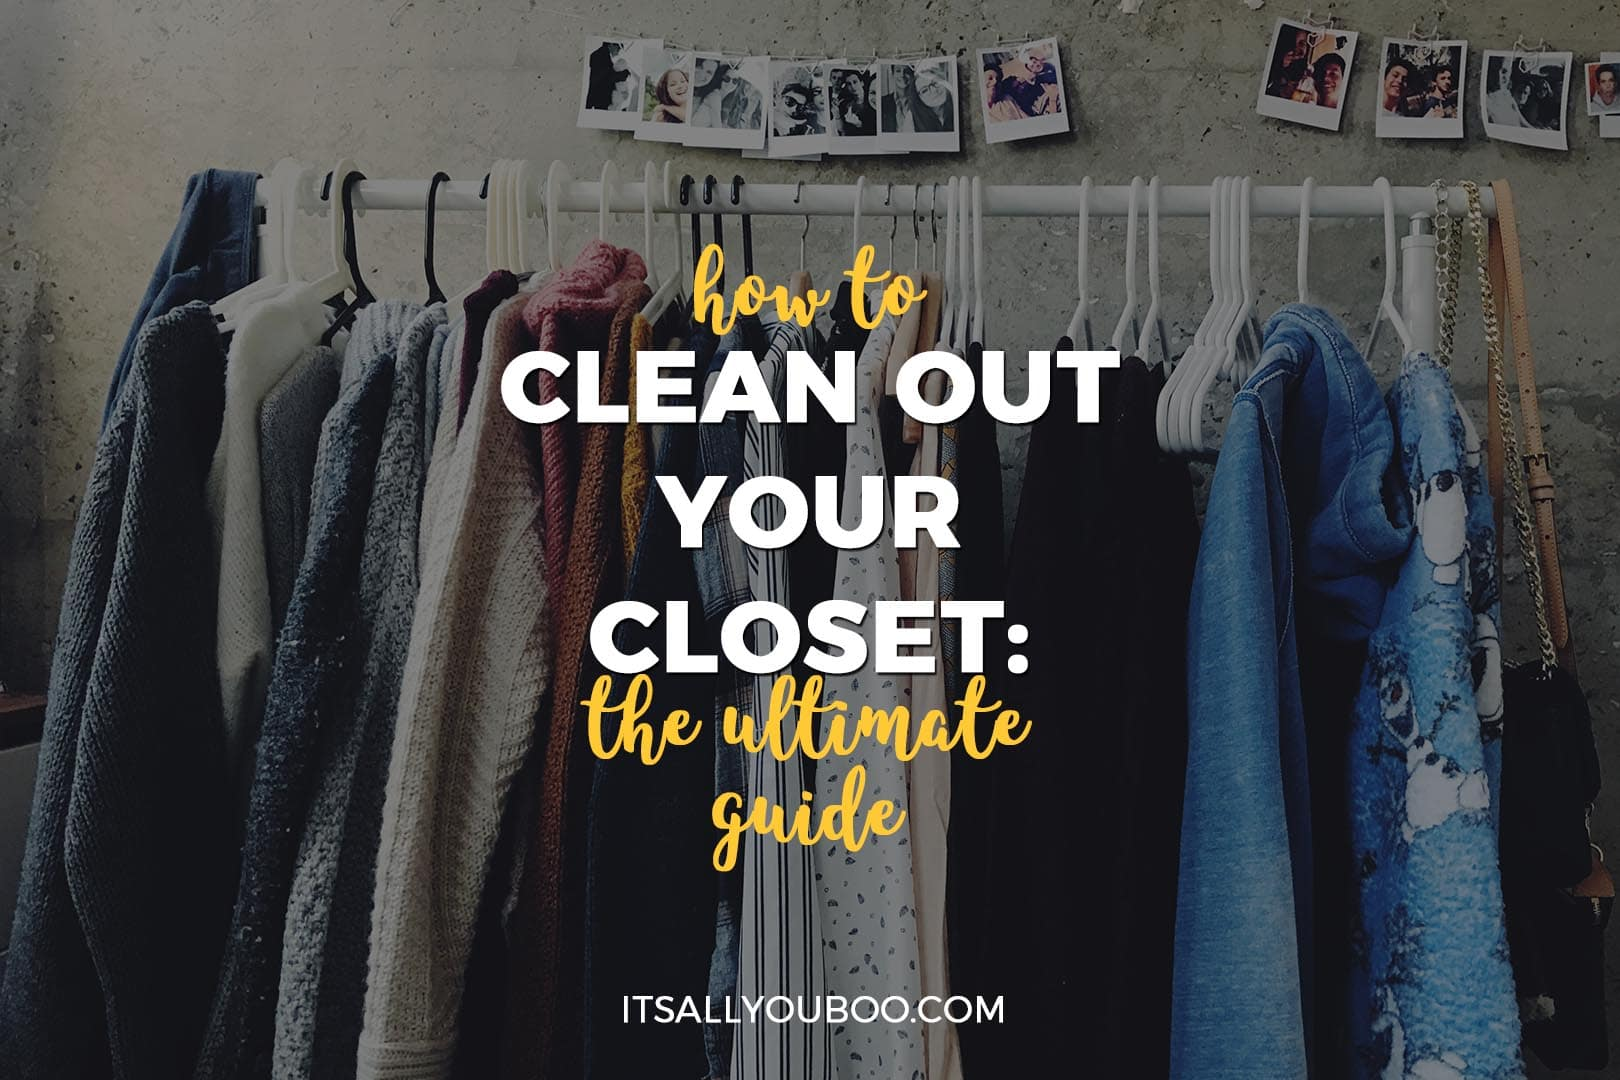 How to Clean Out Your Closet: The ultimate guide